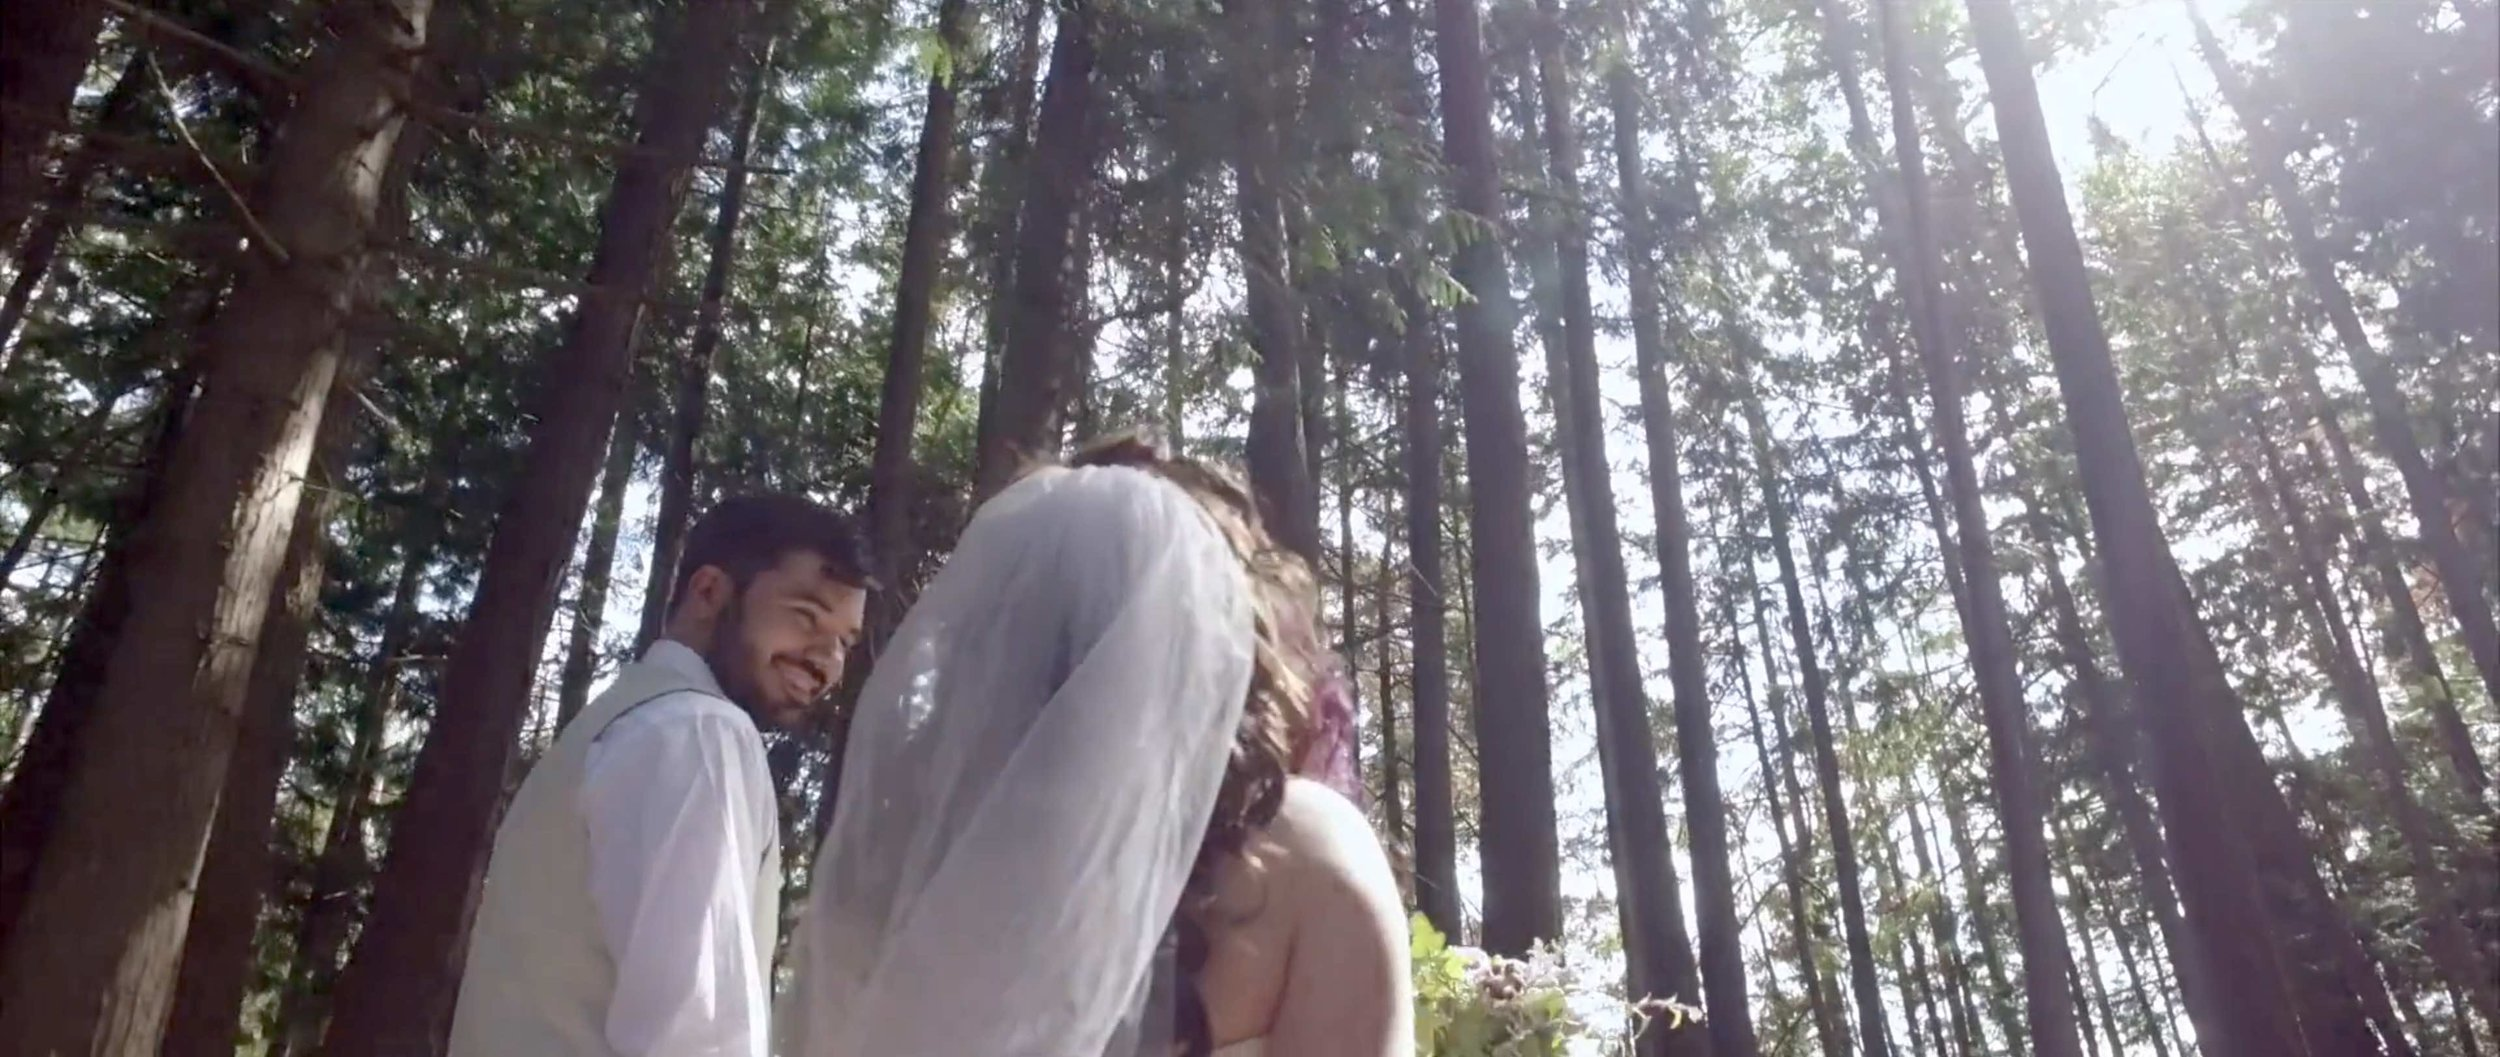 Amber & James - Wedding in the Forest, Vancouver Island, BC - Evergreen & Bound Films.jpg